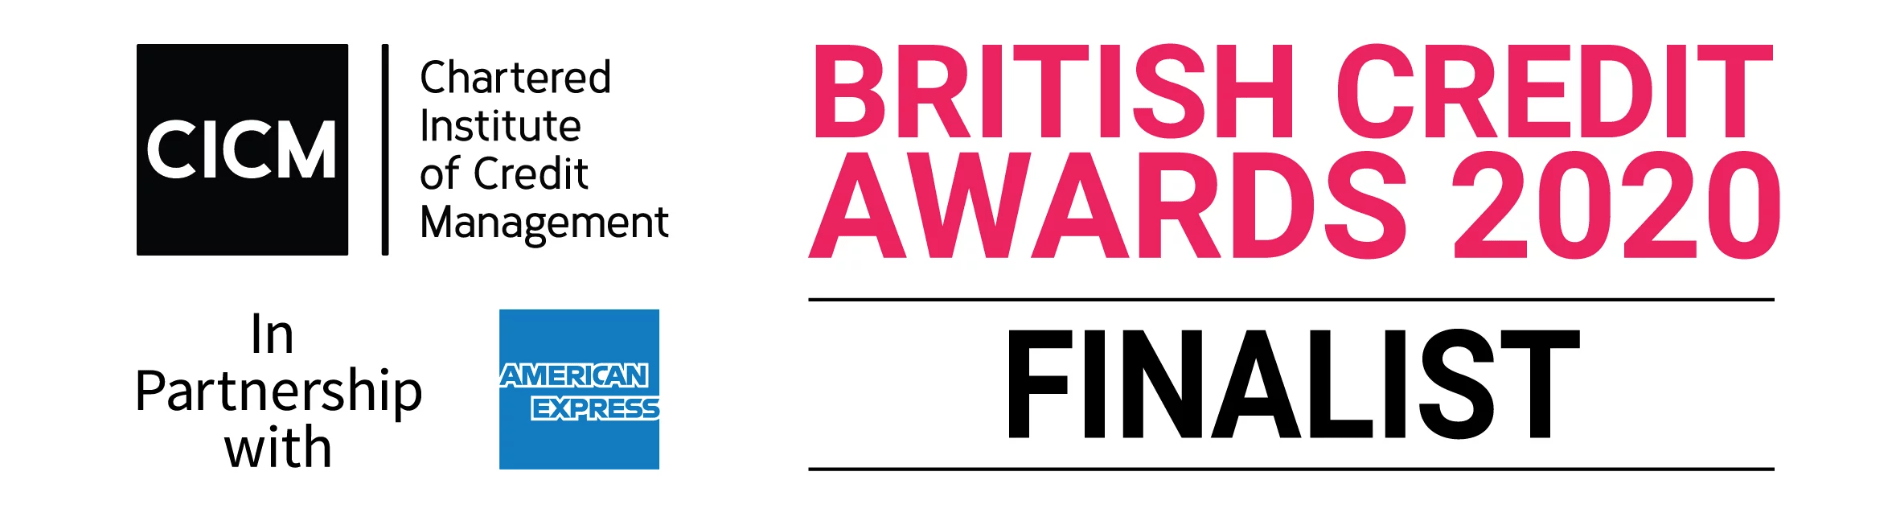 British Credit Awards 2020 Finalist